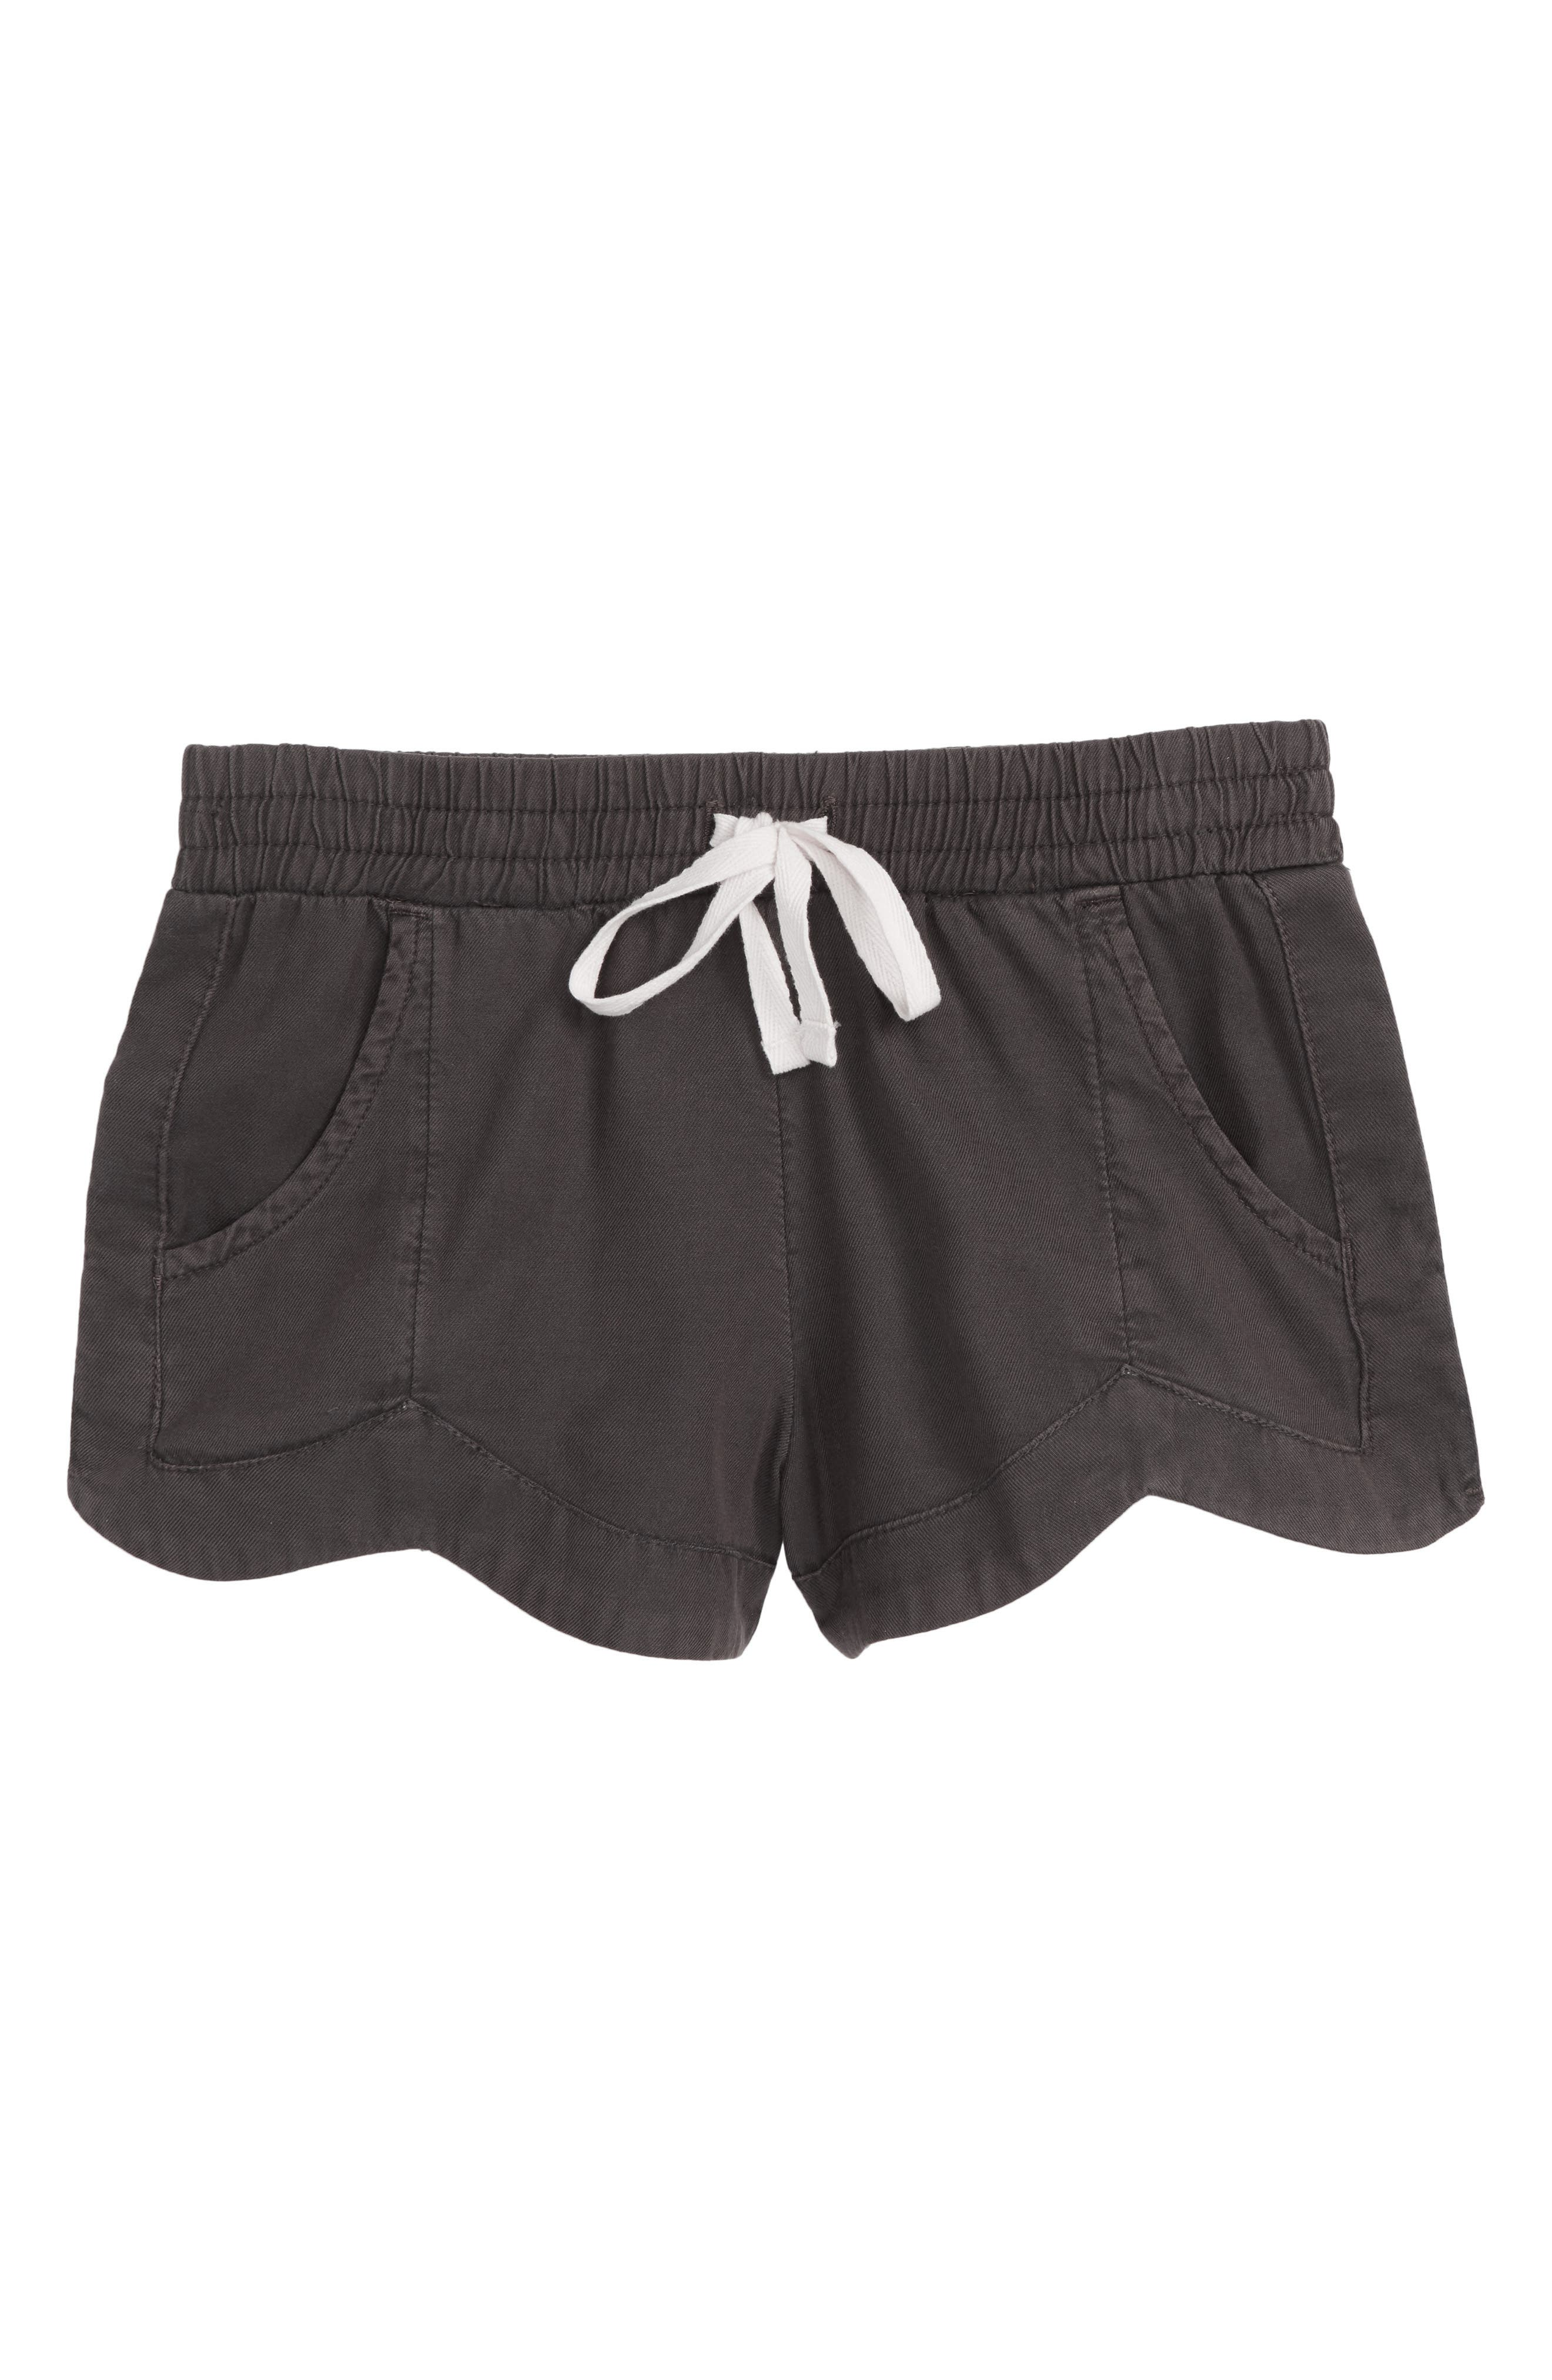 Made For You Woven Shorts,                         Main,                         color, Black